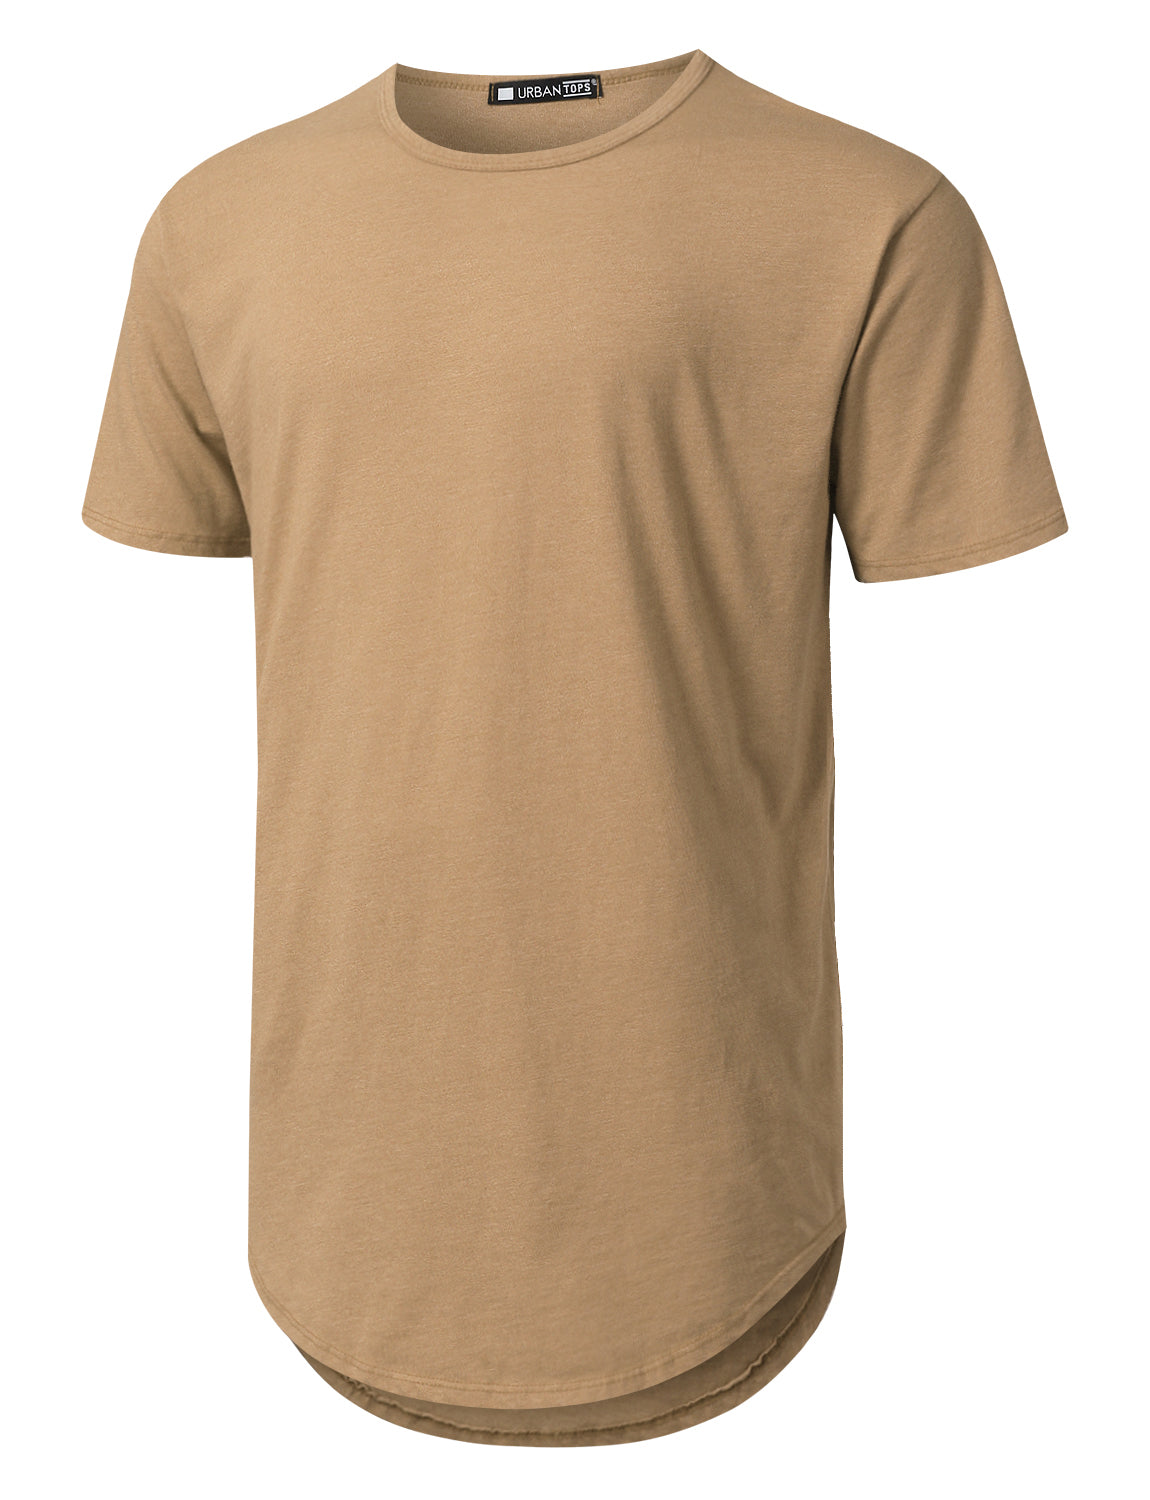 TAN Basic Poly Cotton Longline T-shirt - URBANCREWS